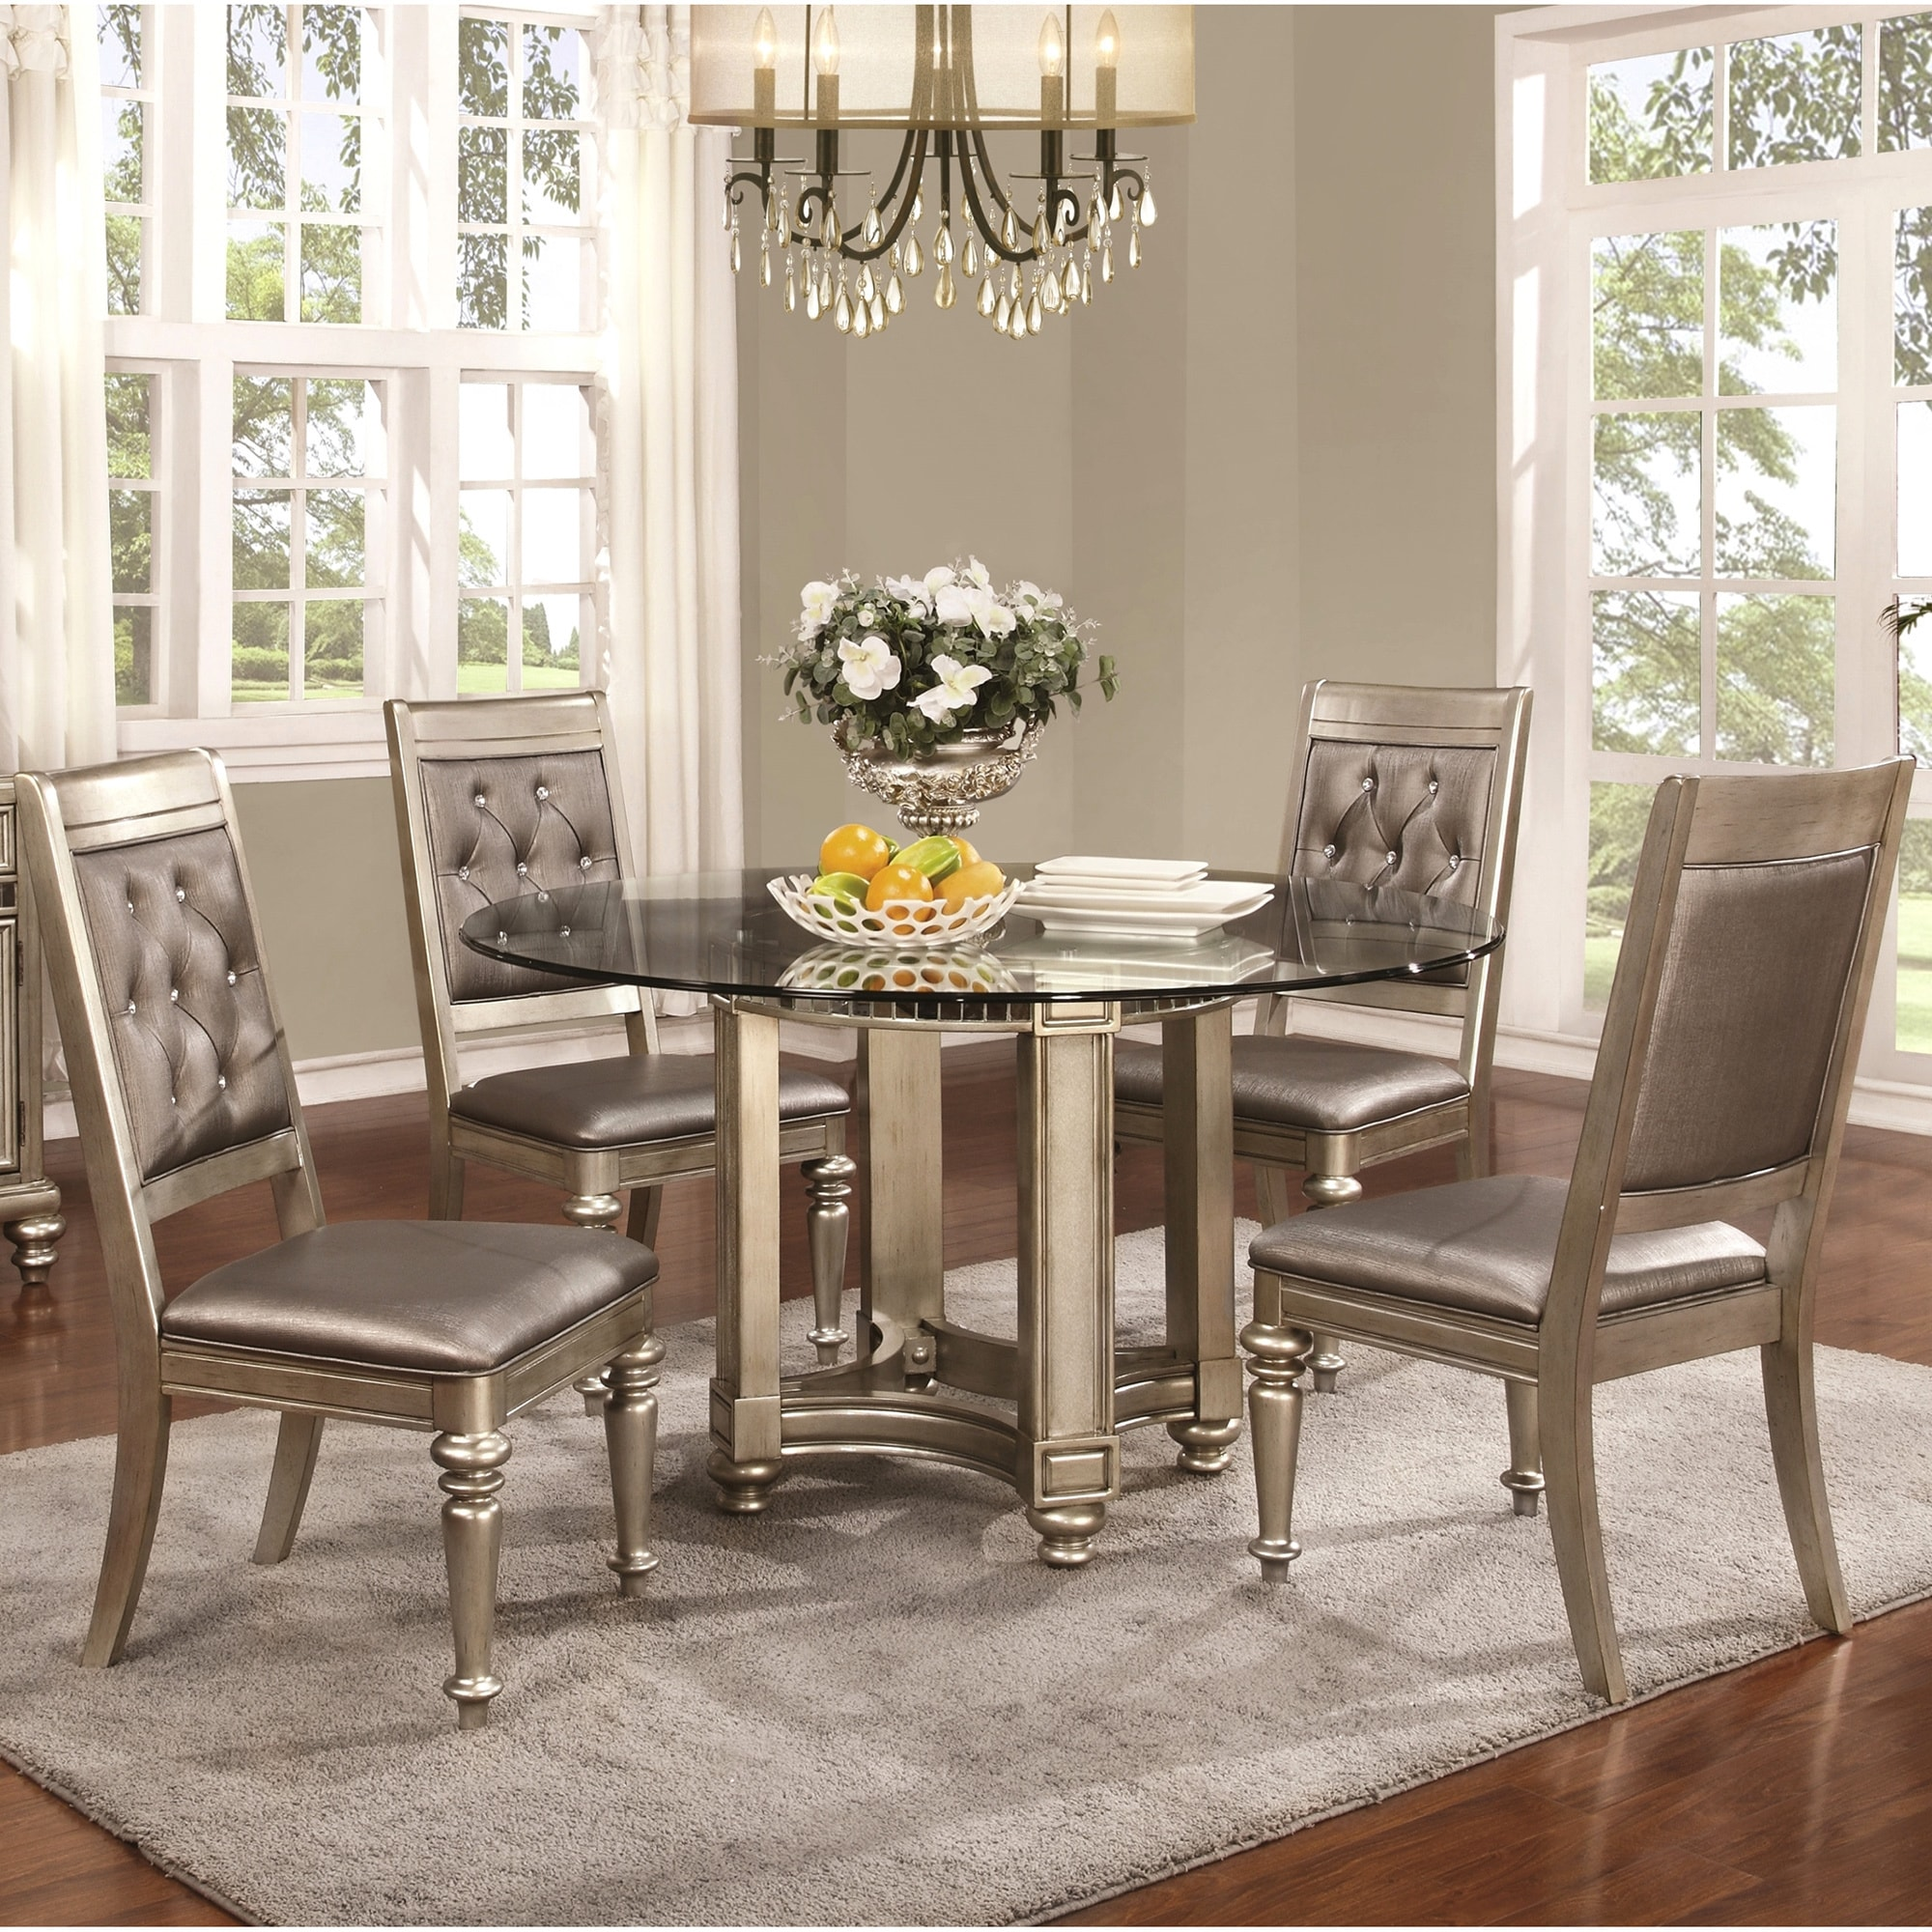 Glamorous Design Metallic Platinum Table Base with Rhines...